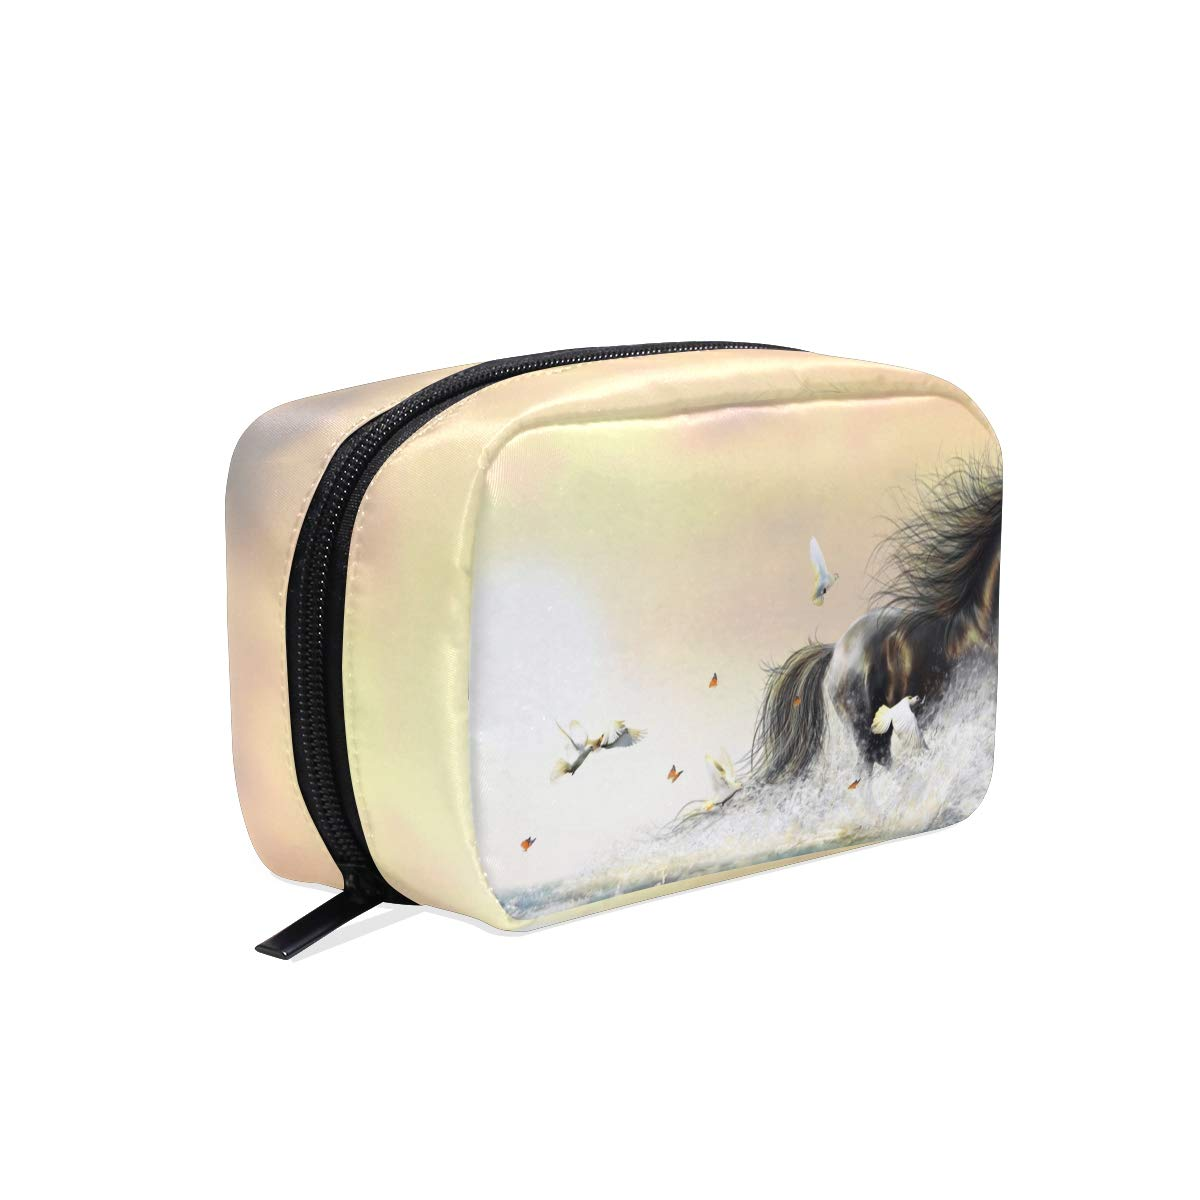 Waterfall Horse Dove Butterfly Travel Cosmetic Bags Makeup Storage Pouch Toiletry Bag Case Brushes Organizer for Women Girl with Zipper